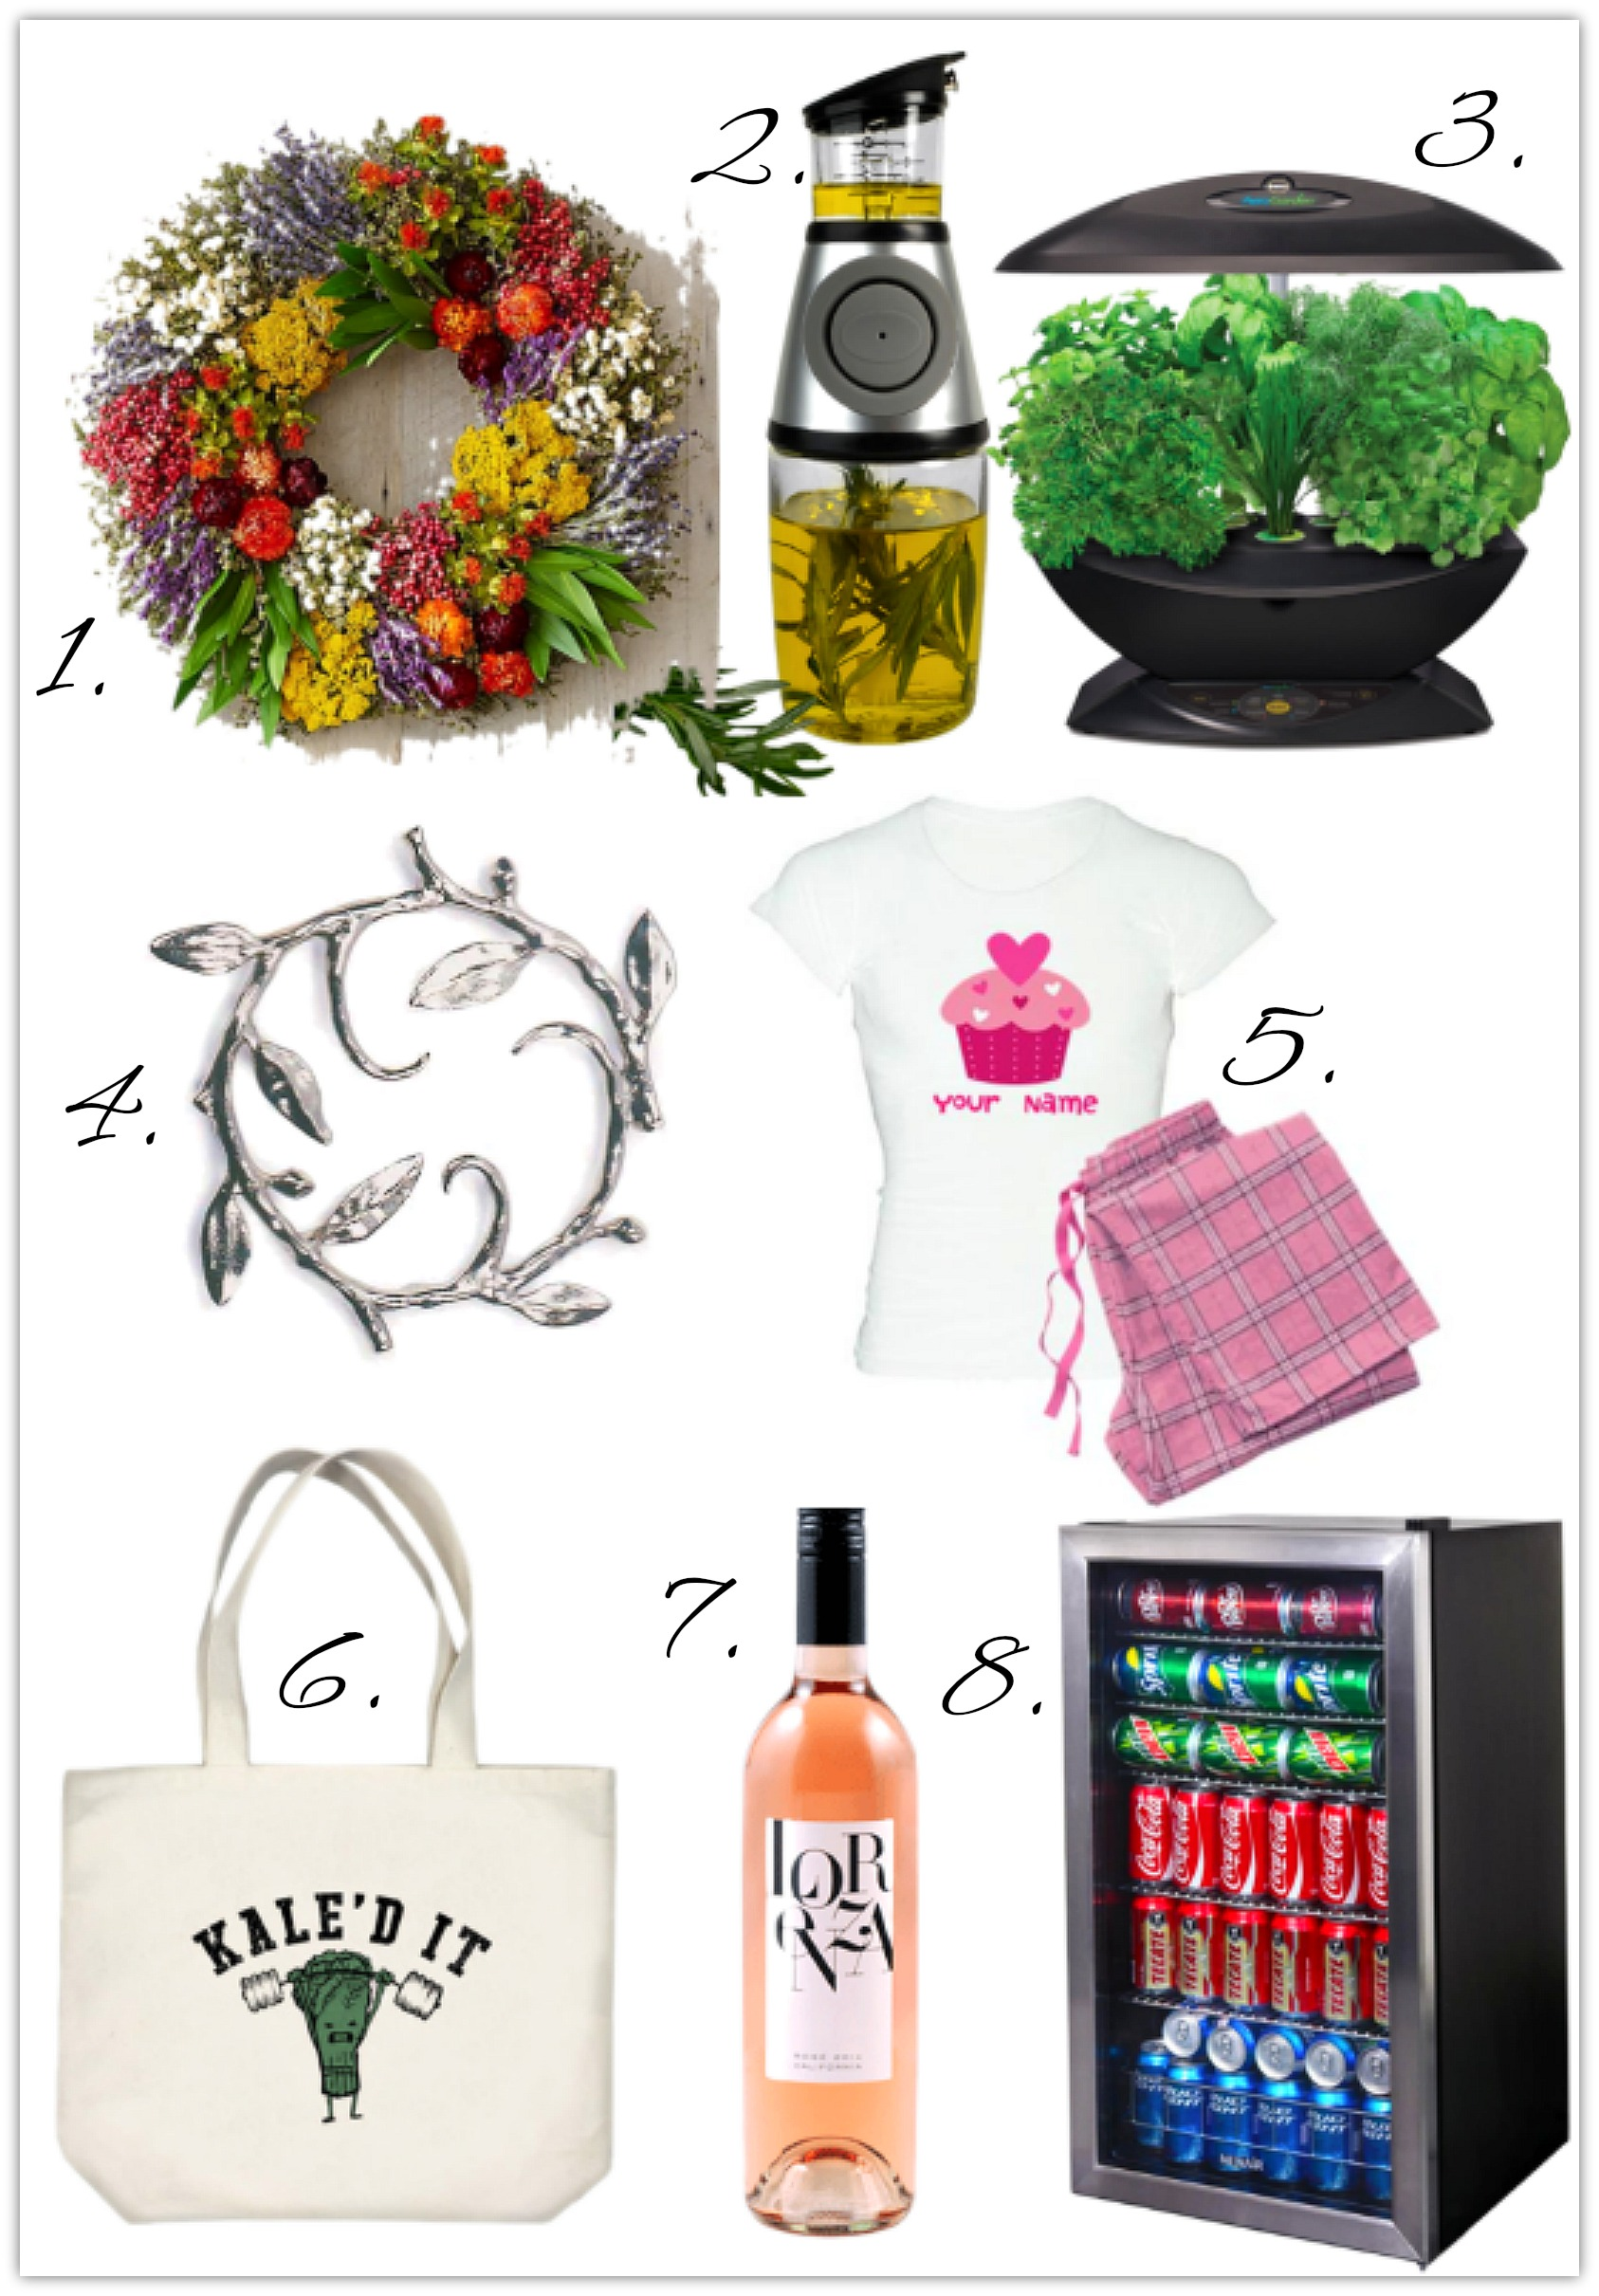 Mothers's Day 2015 Gift Guide for the woman who loves to cook